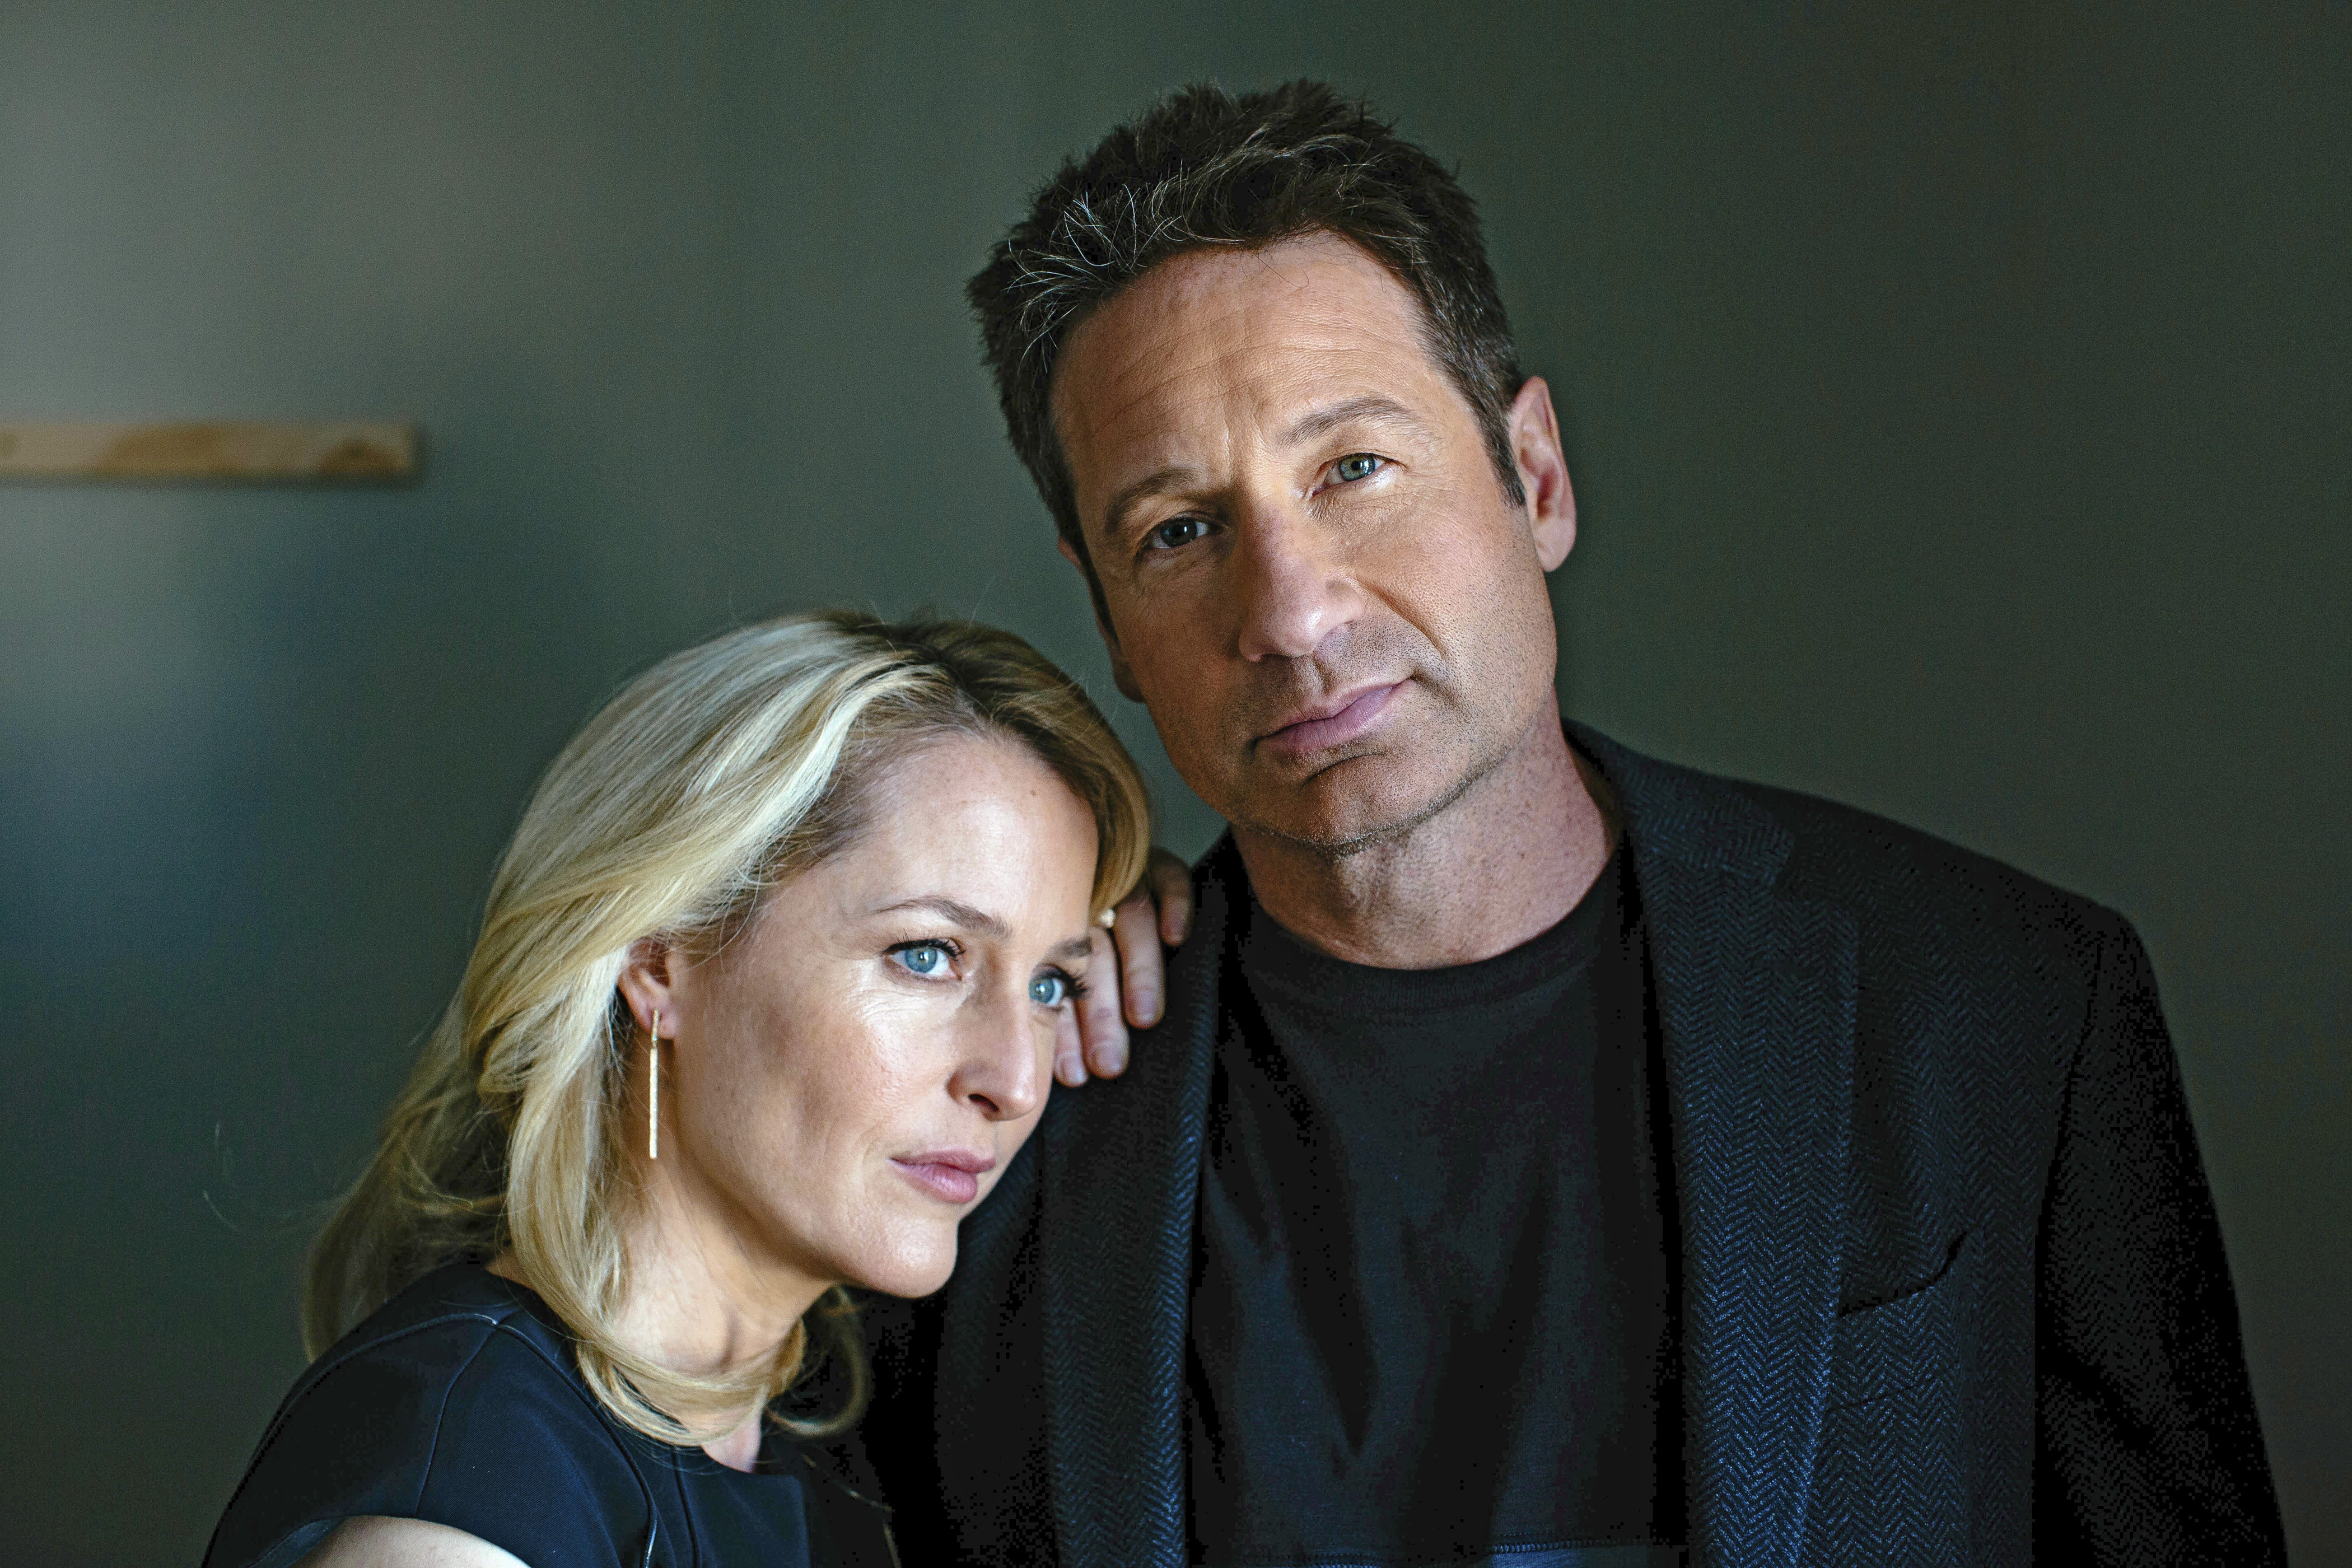 """The X-Files,"" starring Gillian Anderson and David Duchovny, returns to televisions nationwide Jan. 24. (New York Times)"